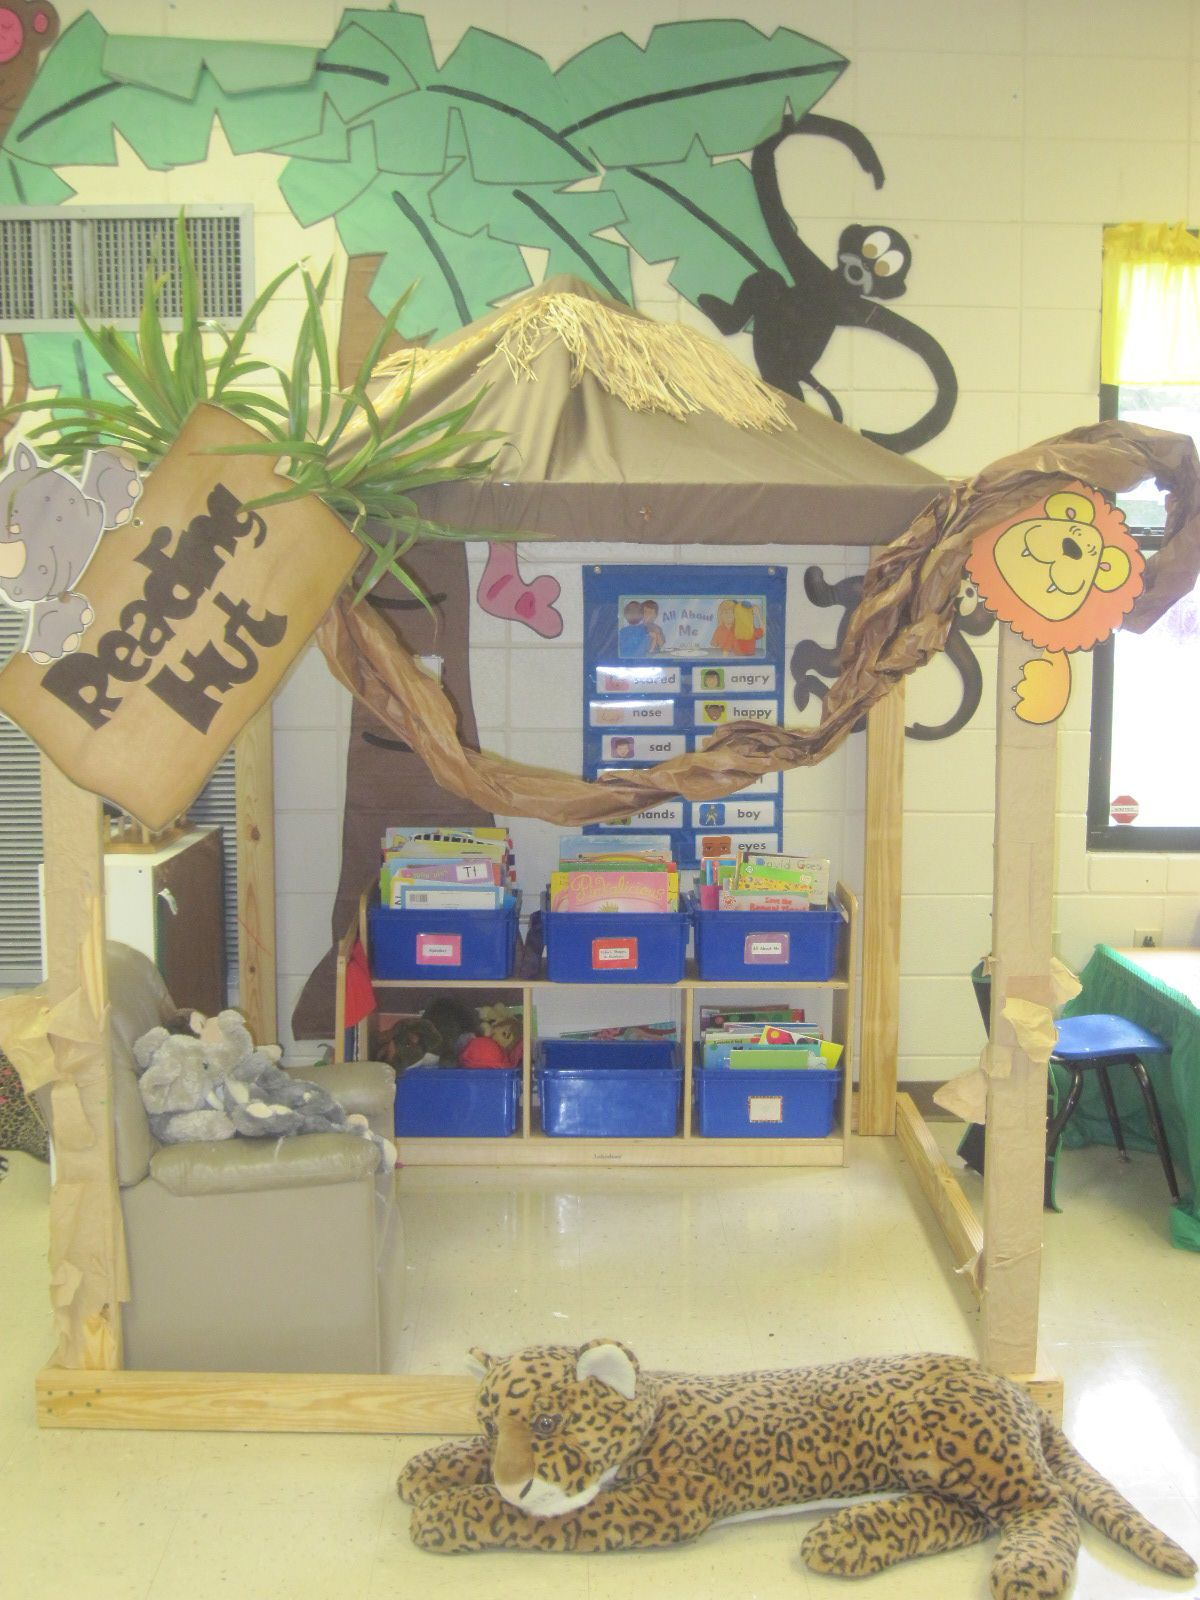 Superb Jungle Theme Classroom Decorating Ideas Part - 9: First Things Firstu2026. Jungle Theme ClassroomClassroom ...